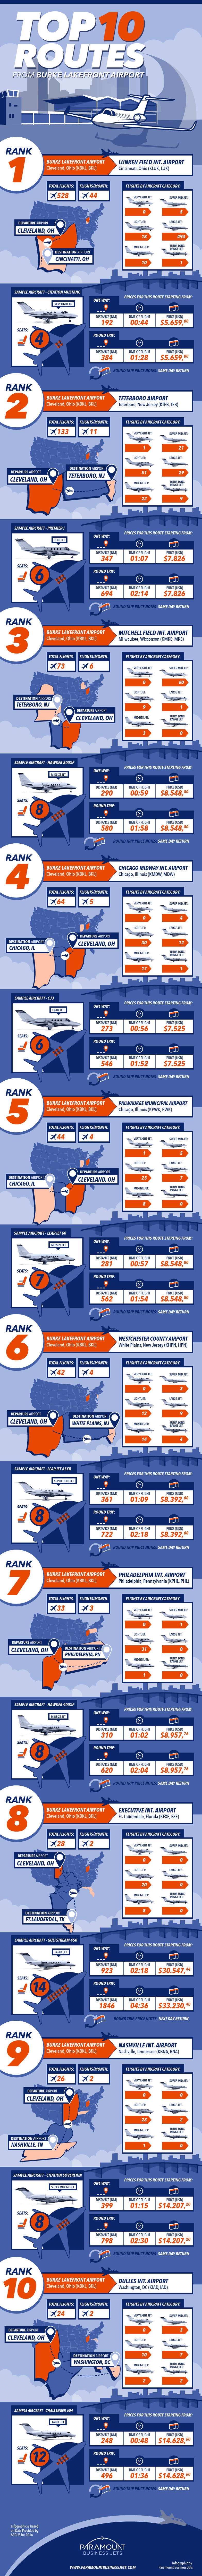 Infographic of Top 10 Private Jet Routes from Burke Lakefront Airport (KBKL)